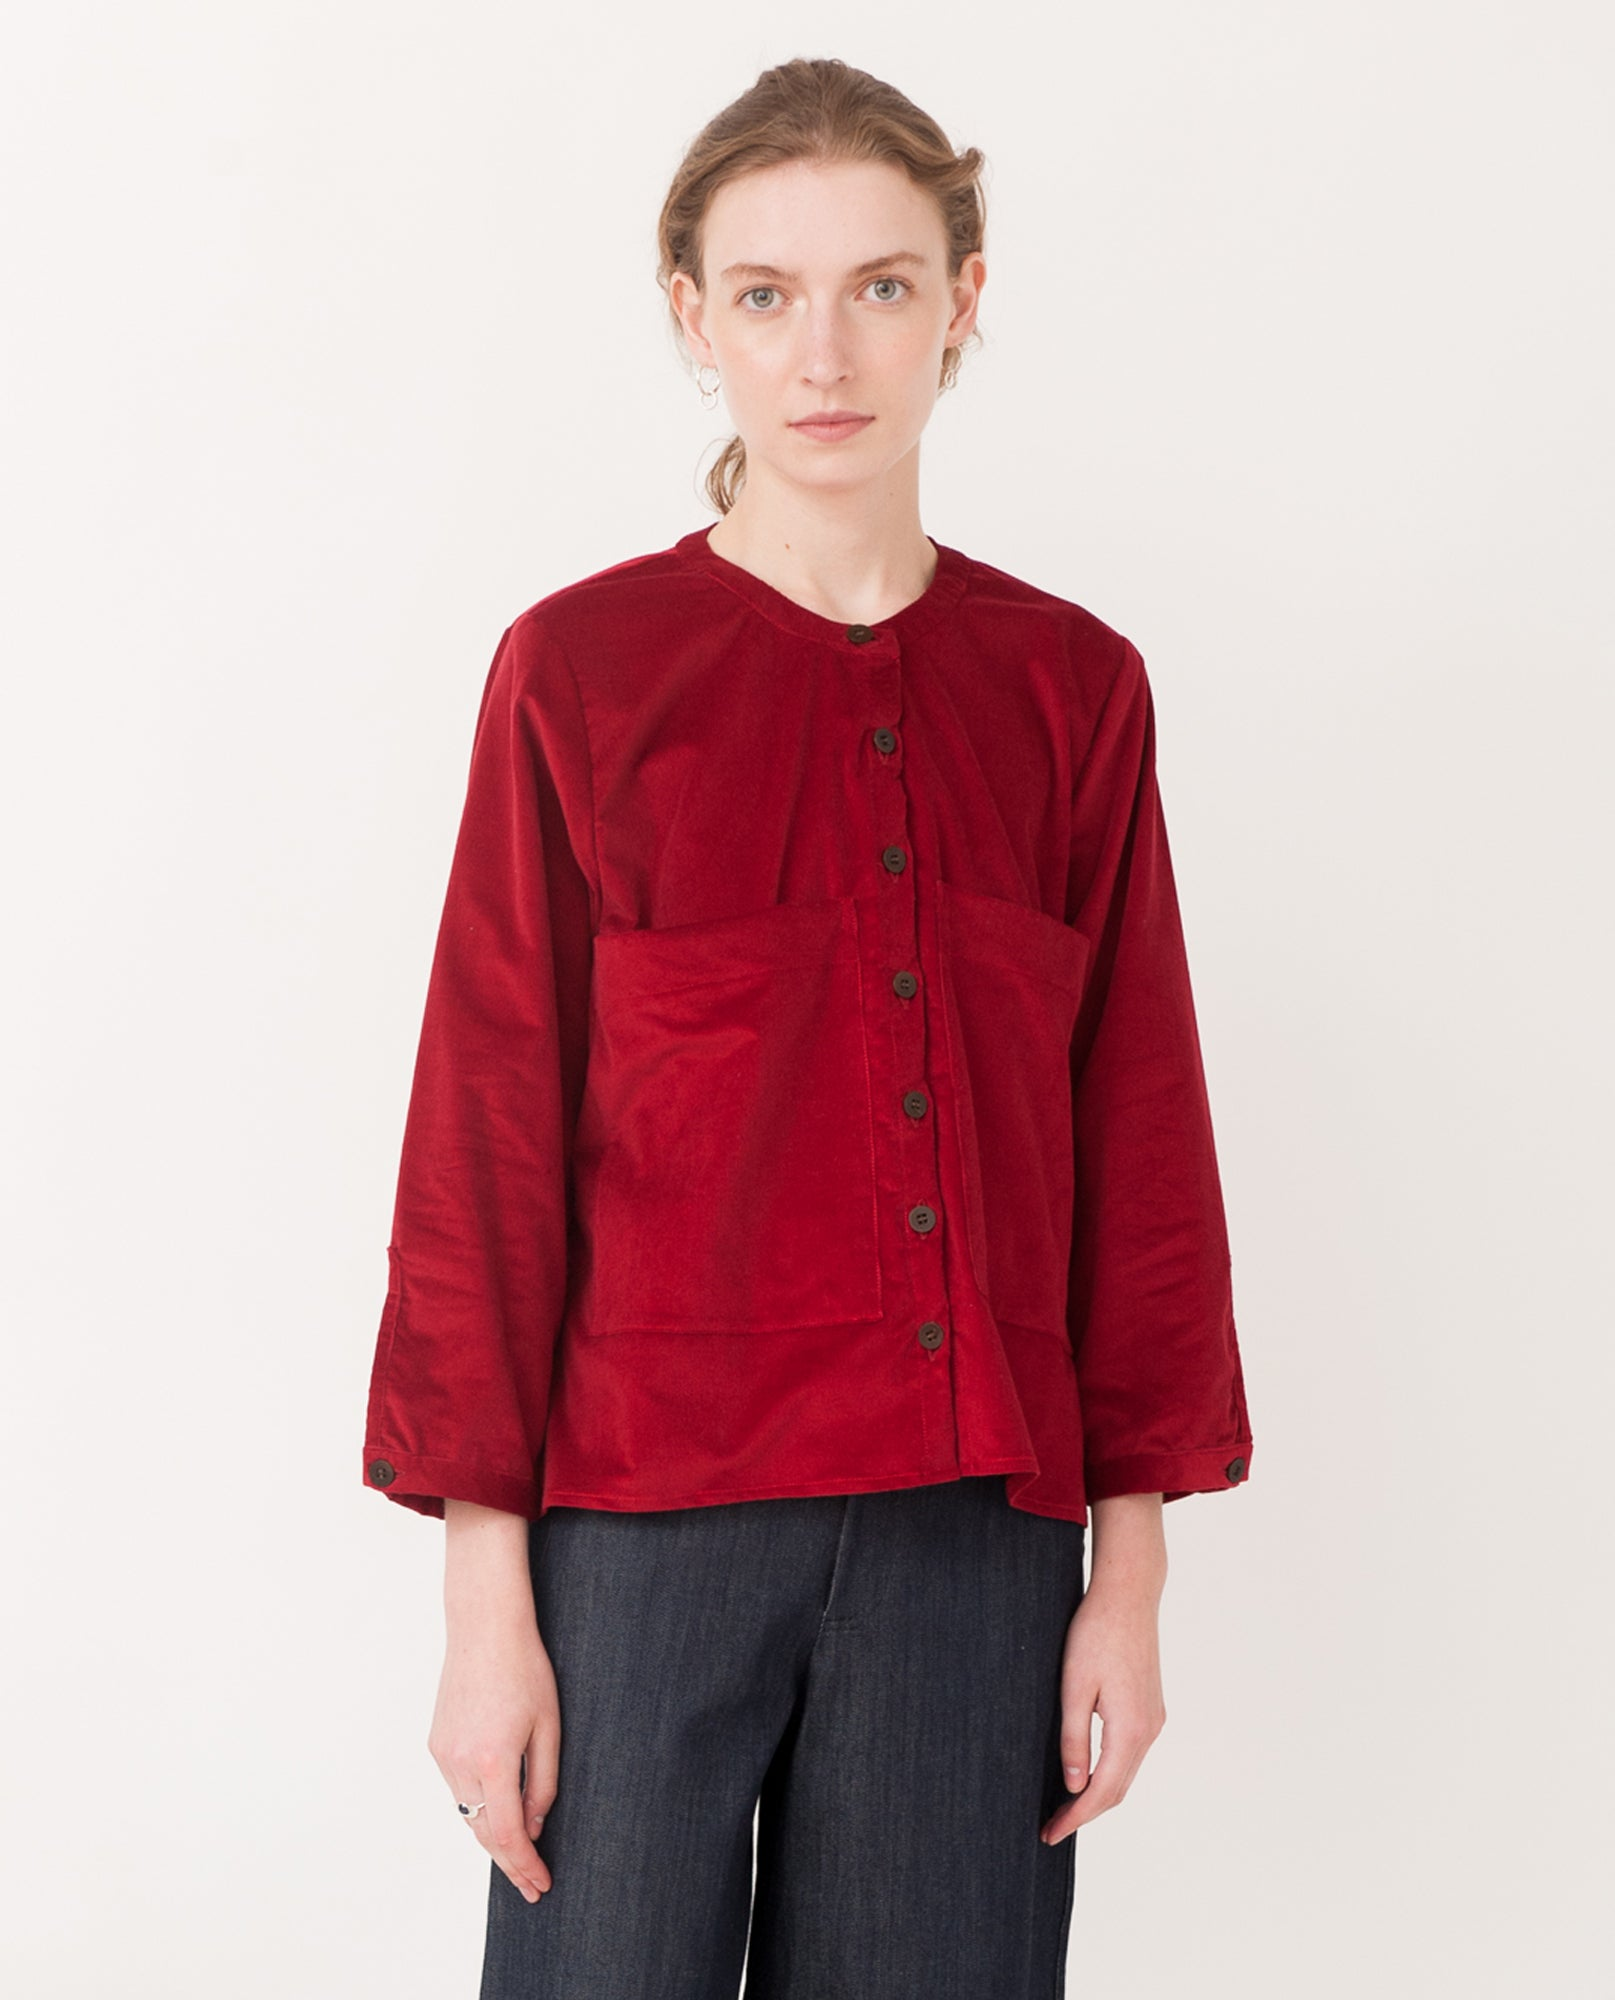 BONNIE Organic Cotton Cord Shirt In Red